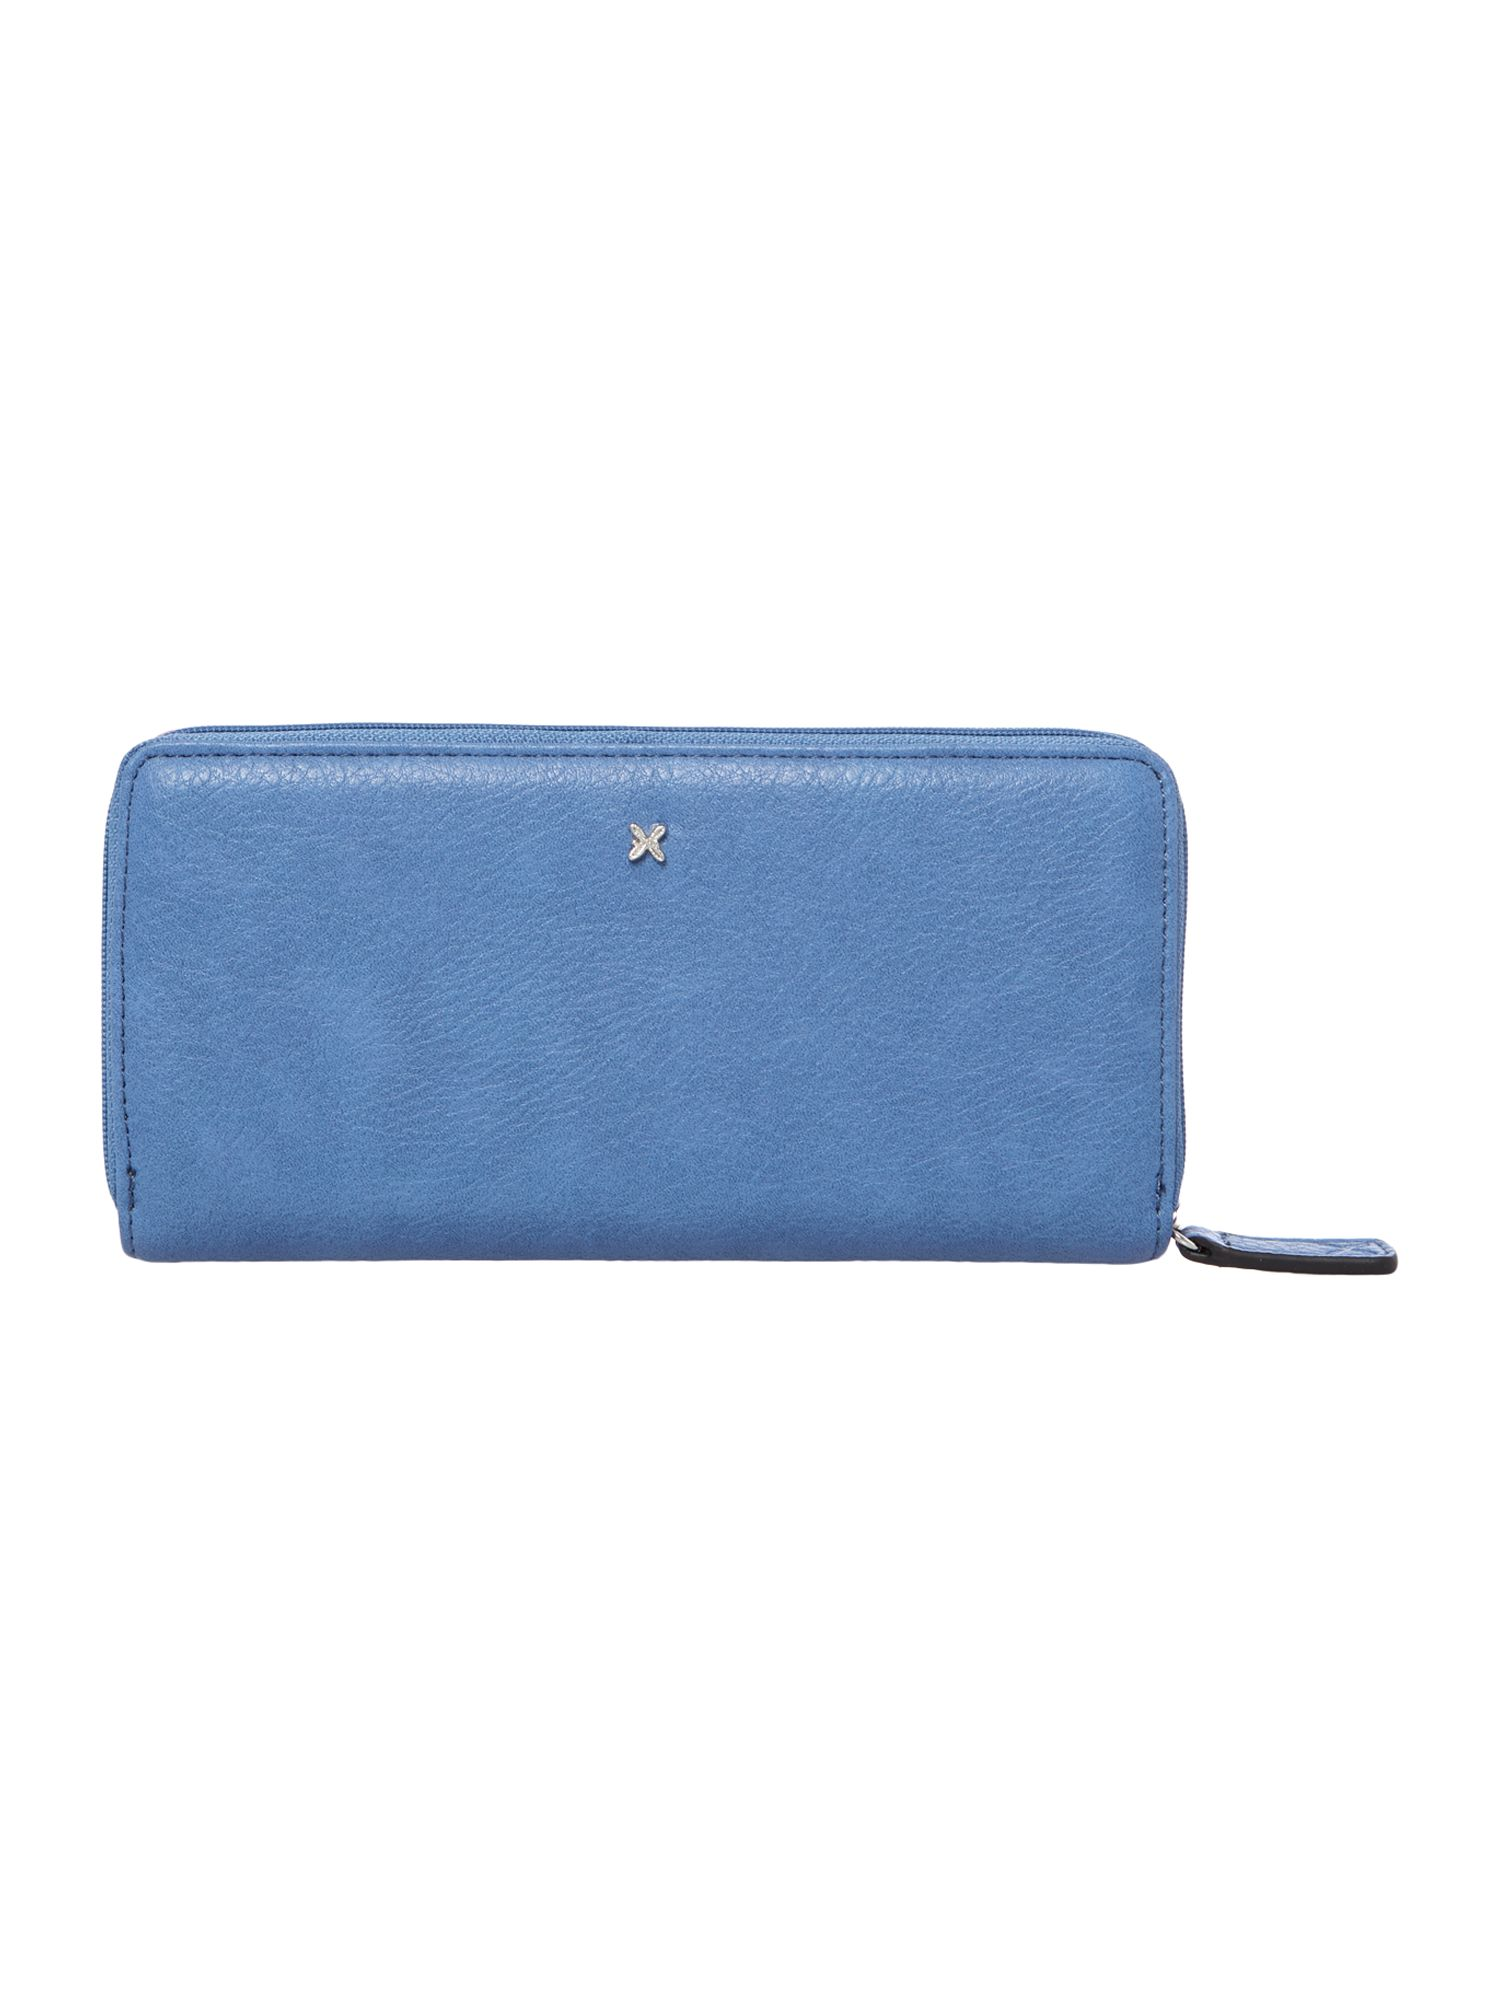 Vera blue large zip around purse